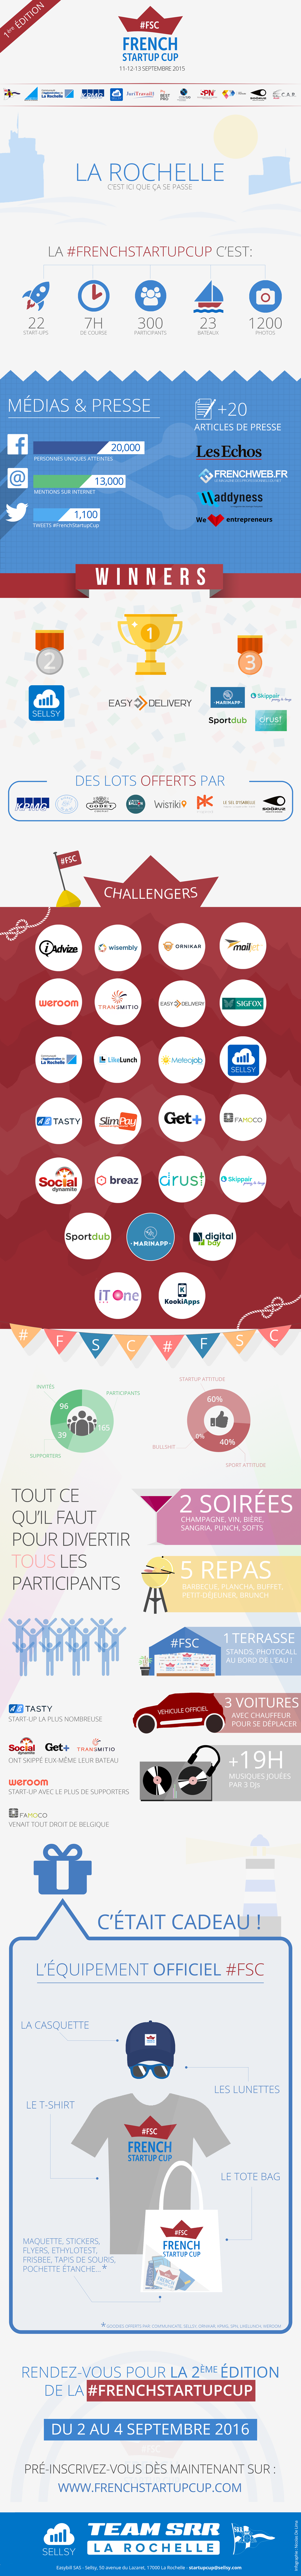 FrenchStartupCup-2015-Infographie